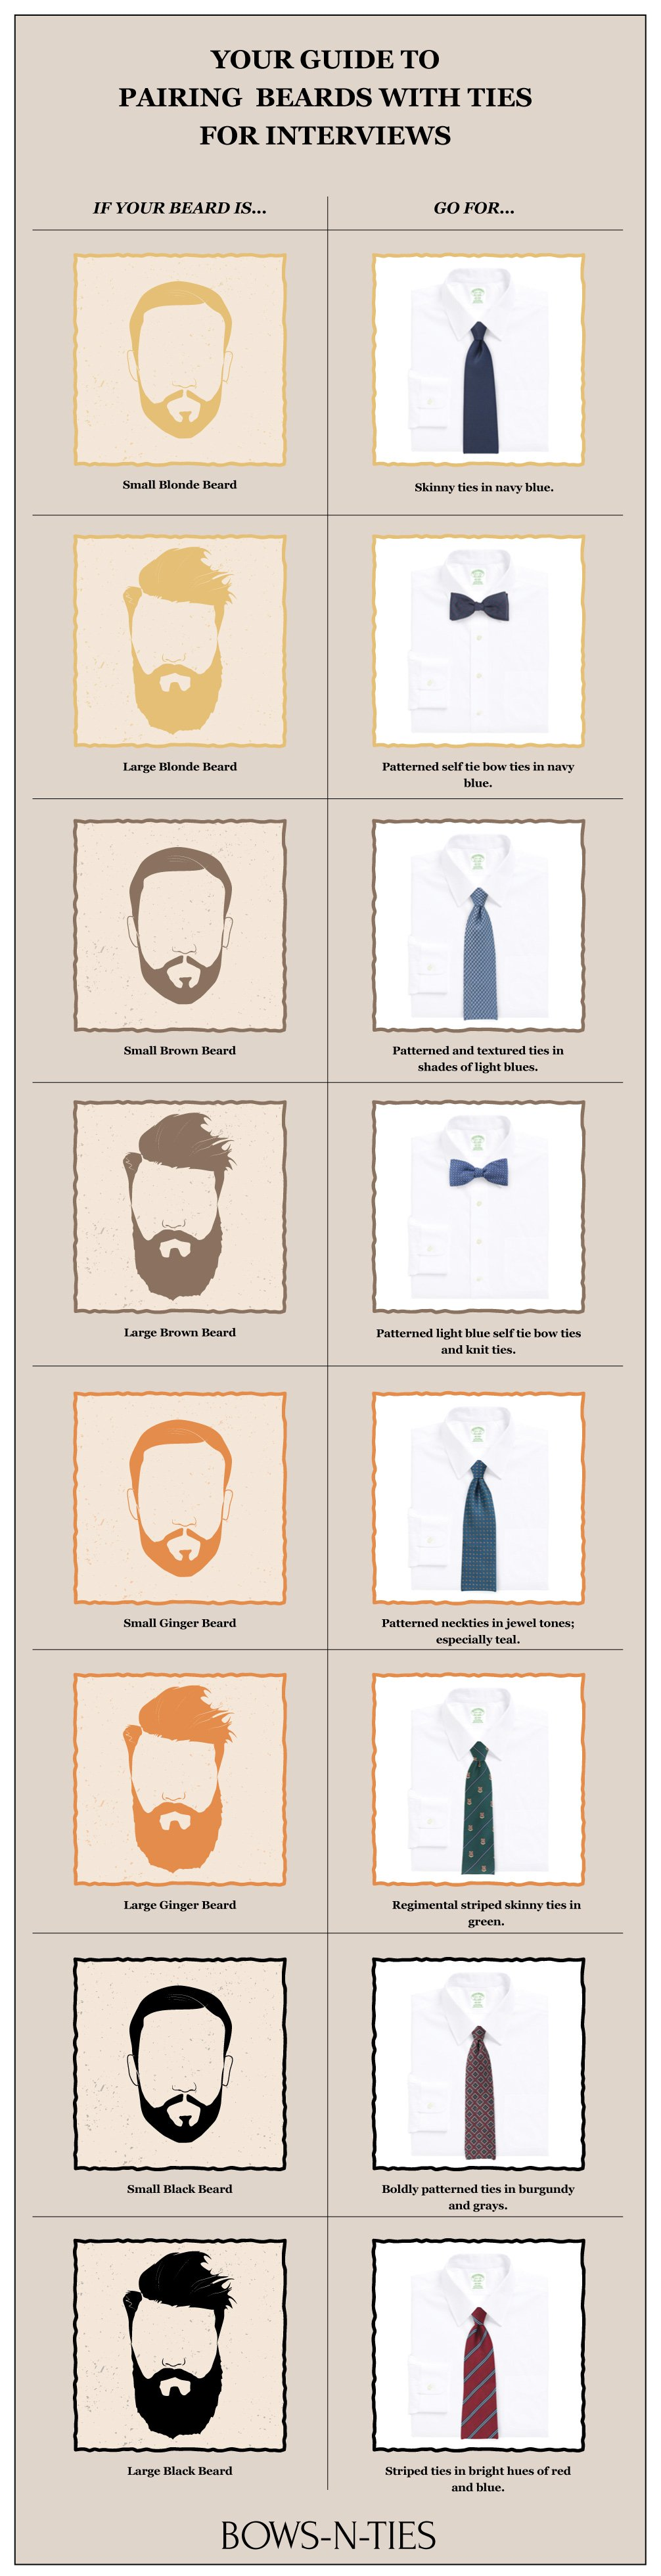 Beard and Tie Pairings